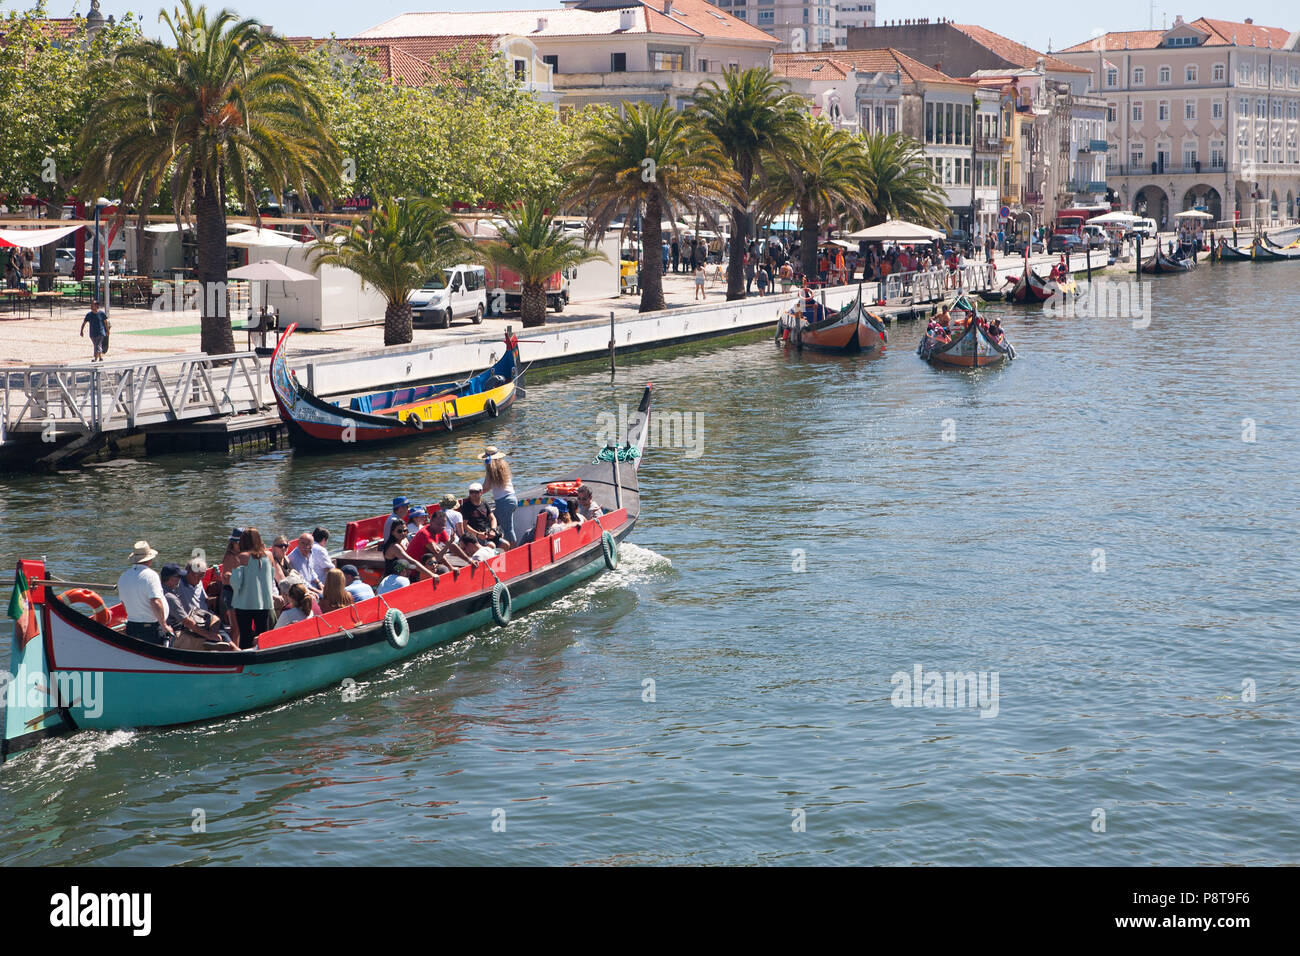 Canal in Aveiro, Portugal, busy with Moliceiros (boats formerly used to collect seaweed) ferrying sightseers. - Stock Image